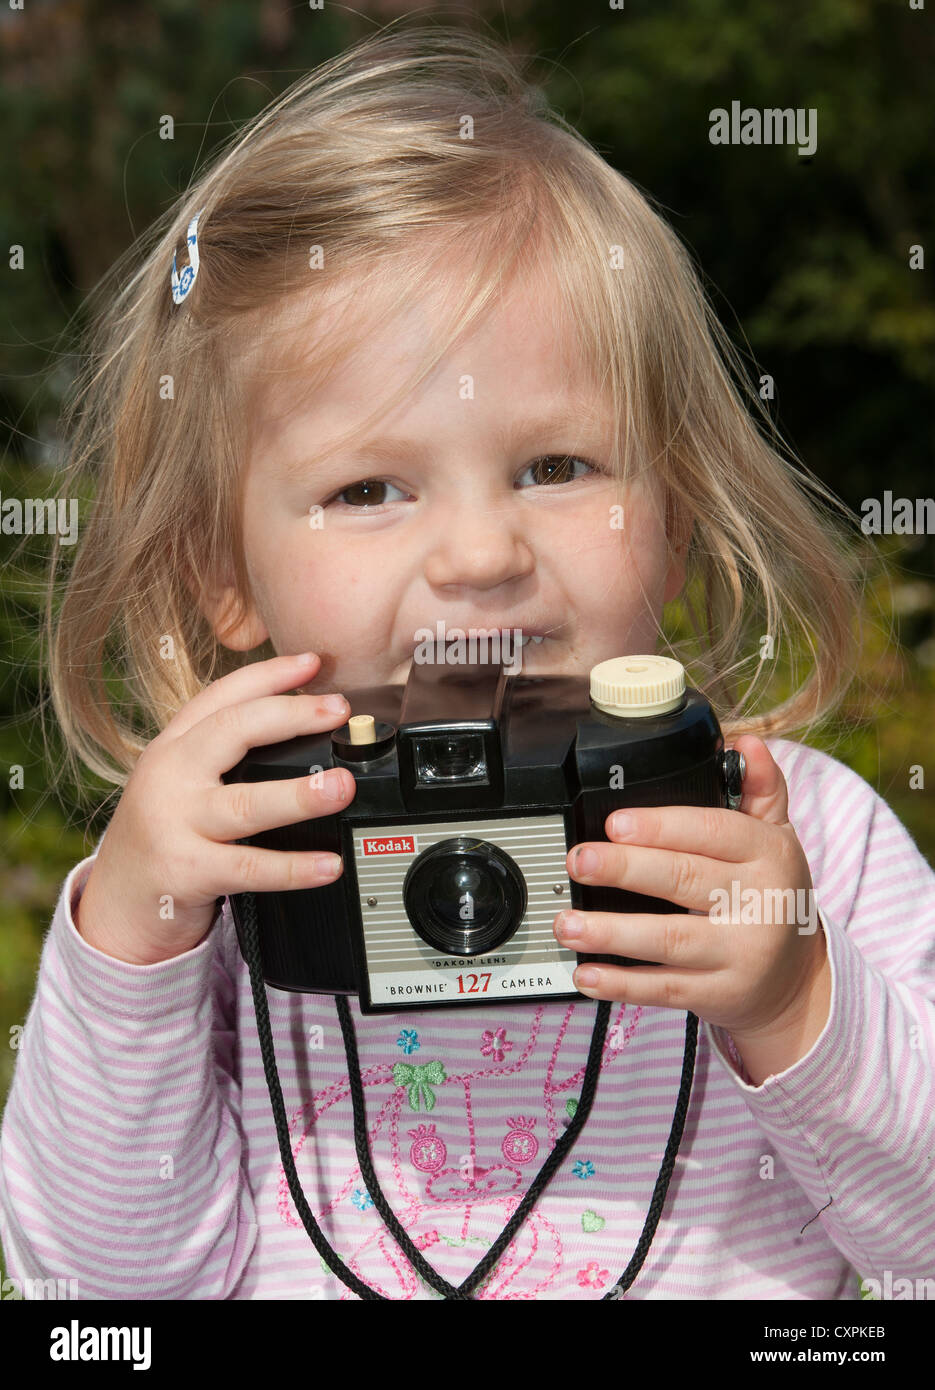 Young girl playing with Kodak Brownie camera. - Stock Image